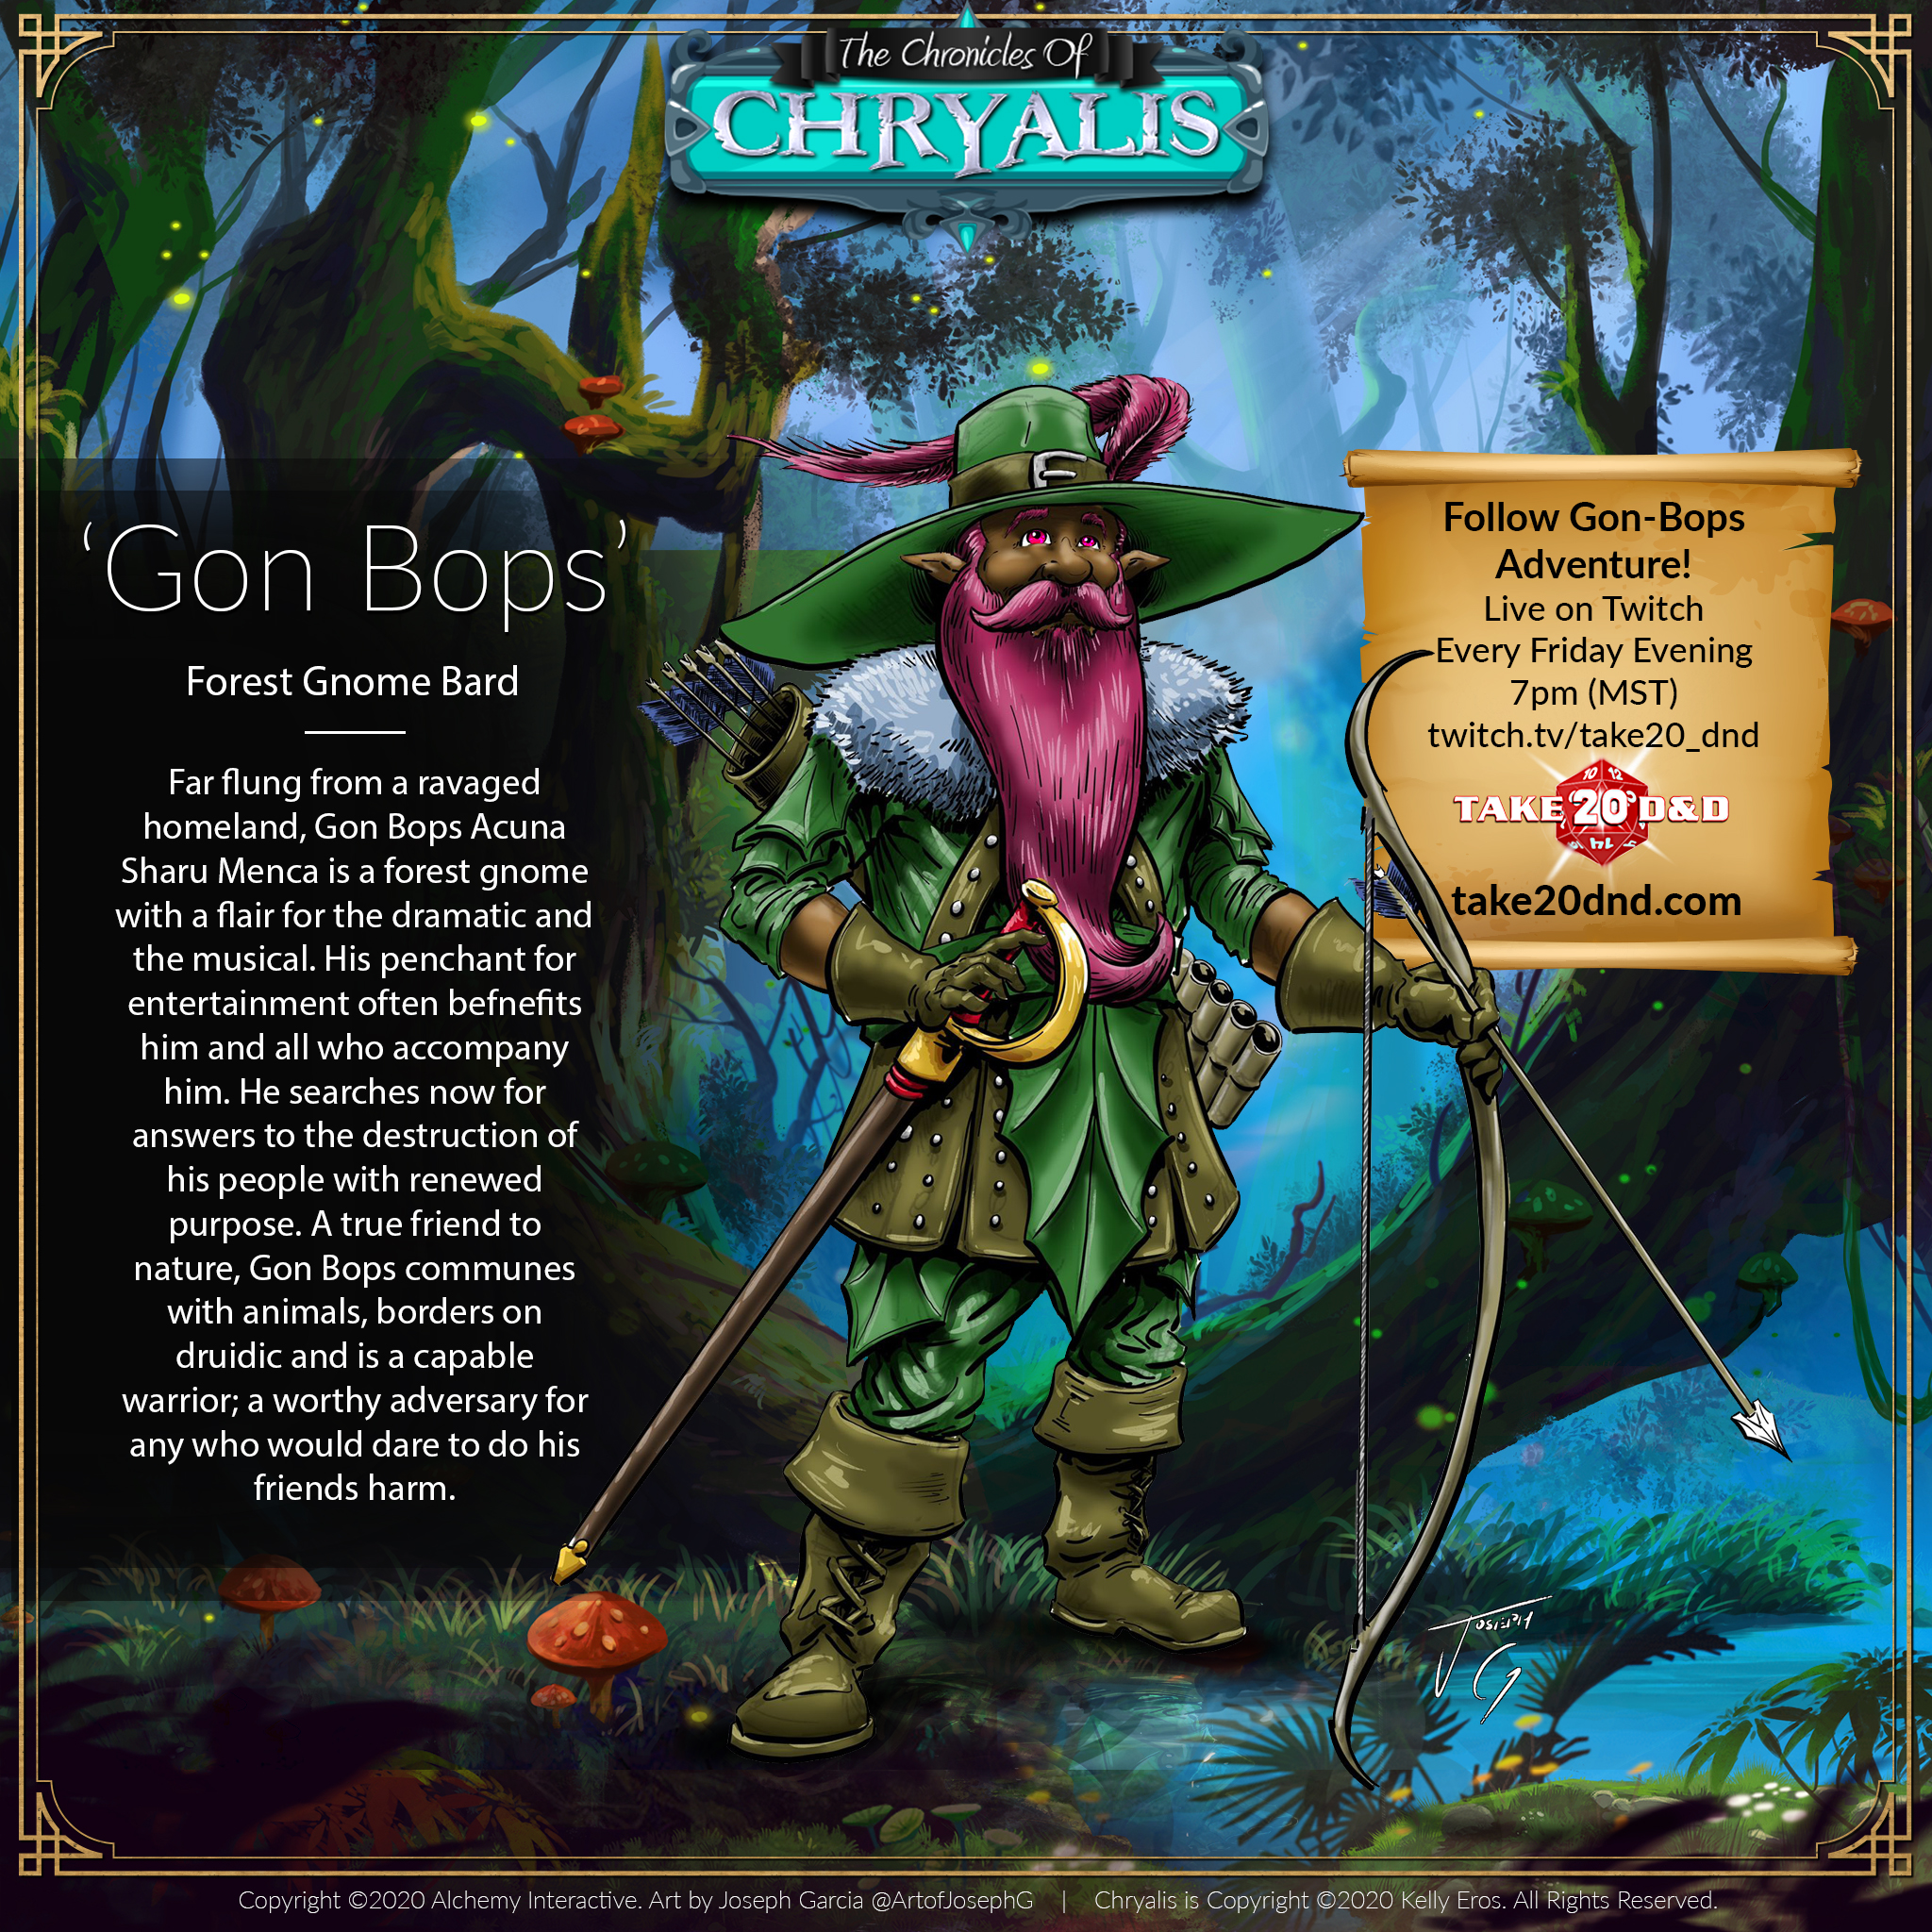 Chronicles of Chryalis - Gon Bops the Gnome Bard